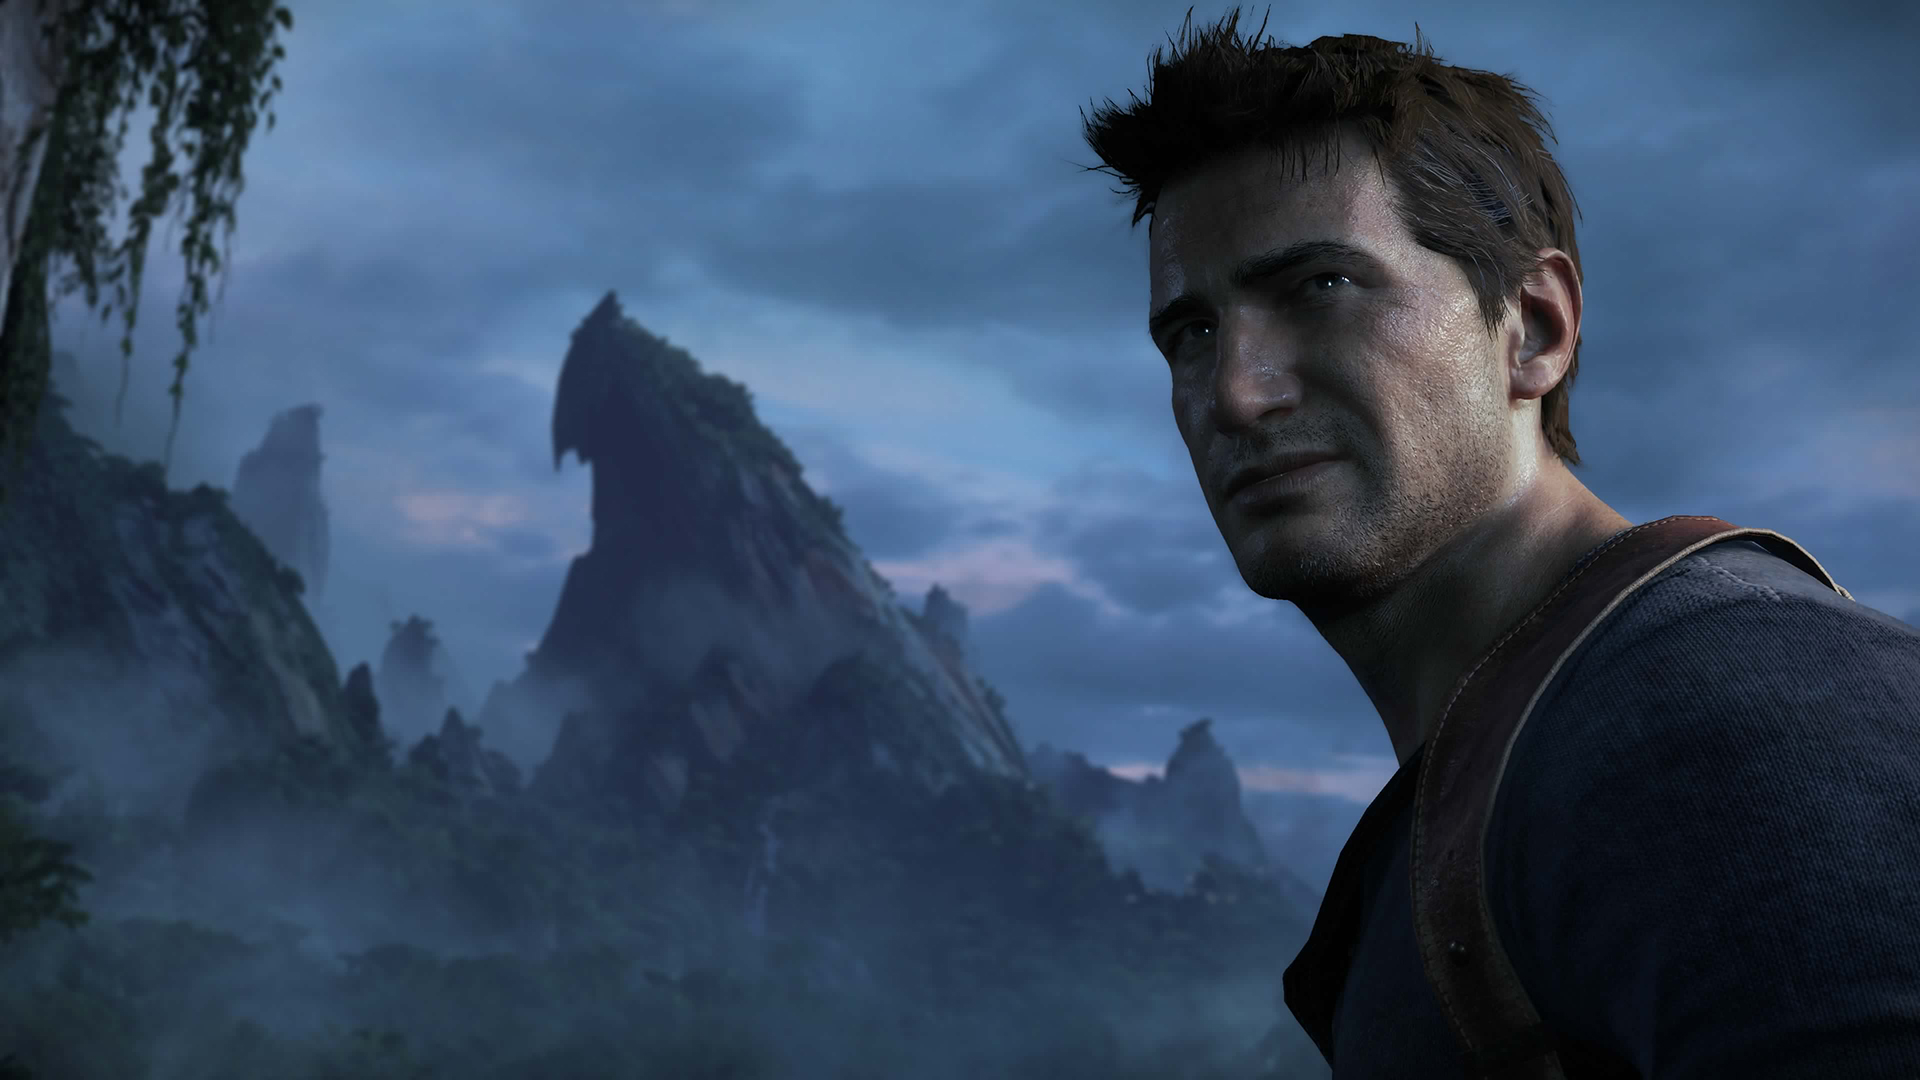 Uncharted 4 Breaks Phenomenal Sales Record In Opening Week Uncharted 4